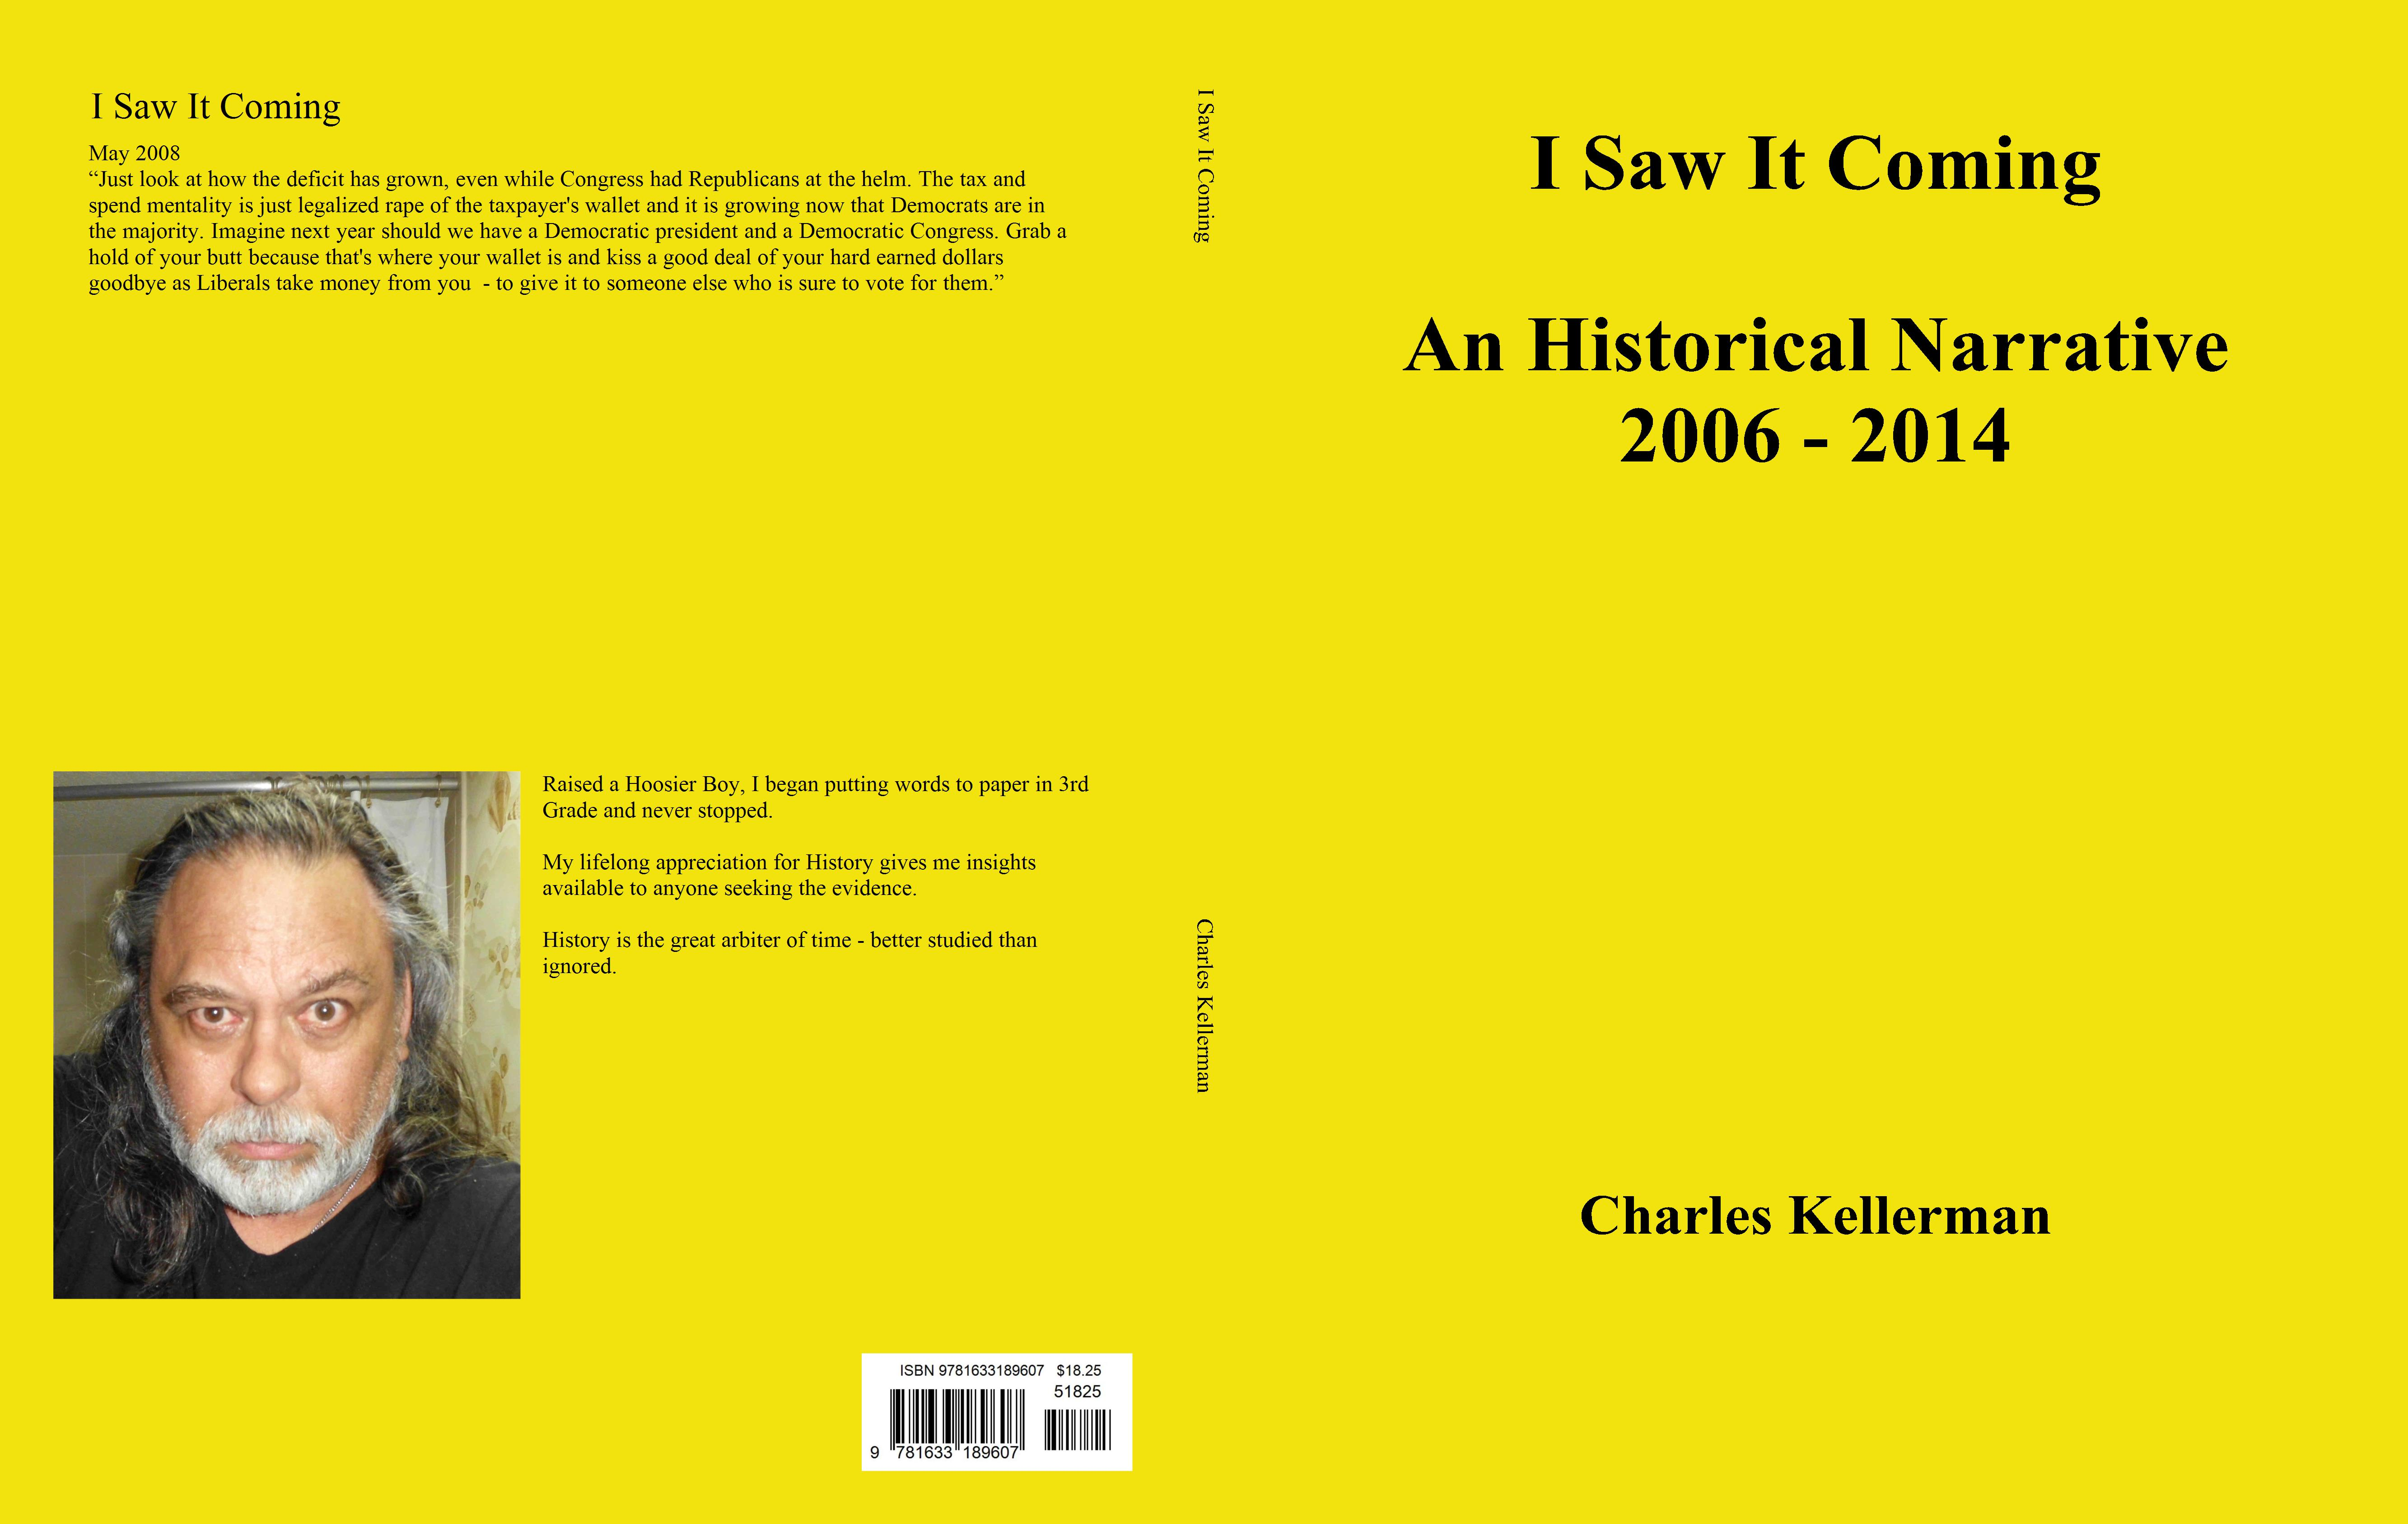 I Saw It Coming An Historical Narrative 2006 - 2014 cover image